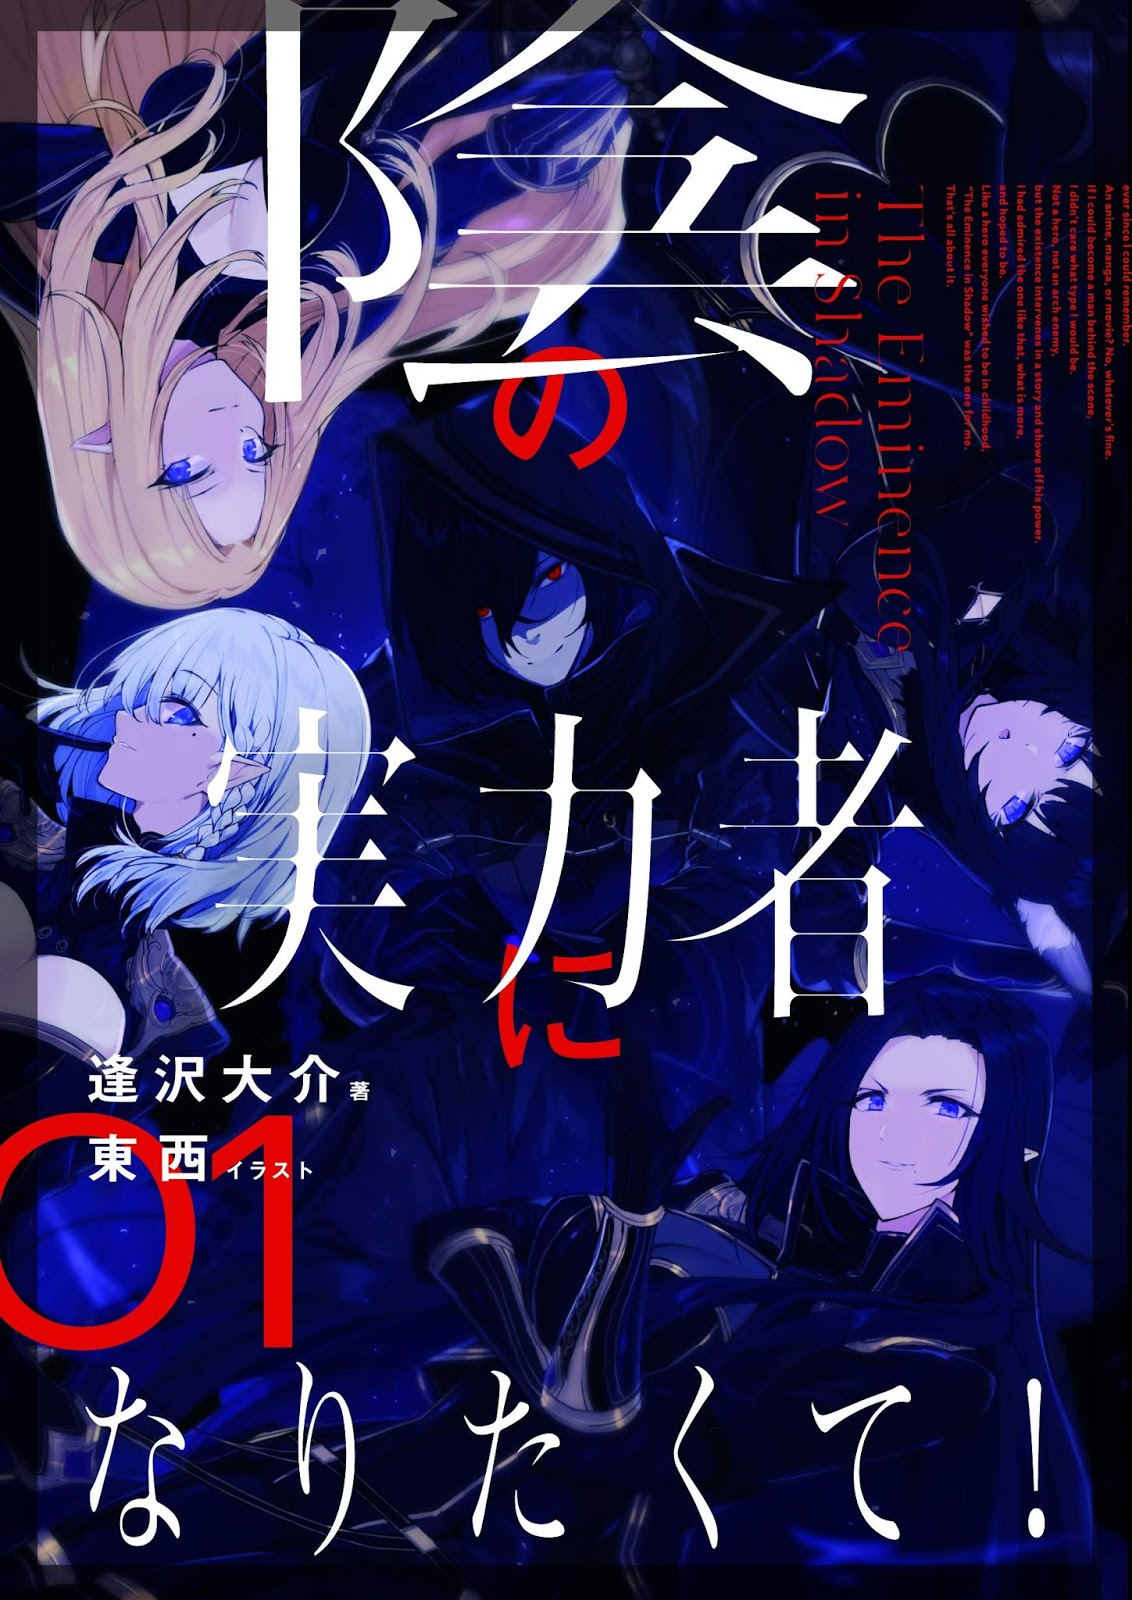 Capa do volume 1 da Light Novel The Eminence In Shadow Lightnovel / Kage no Jitsuryokusha ni Naritakute